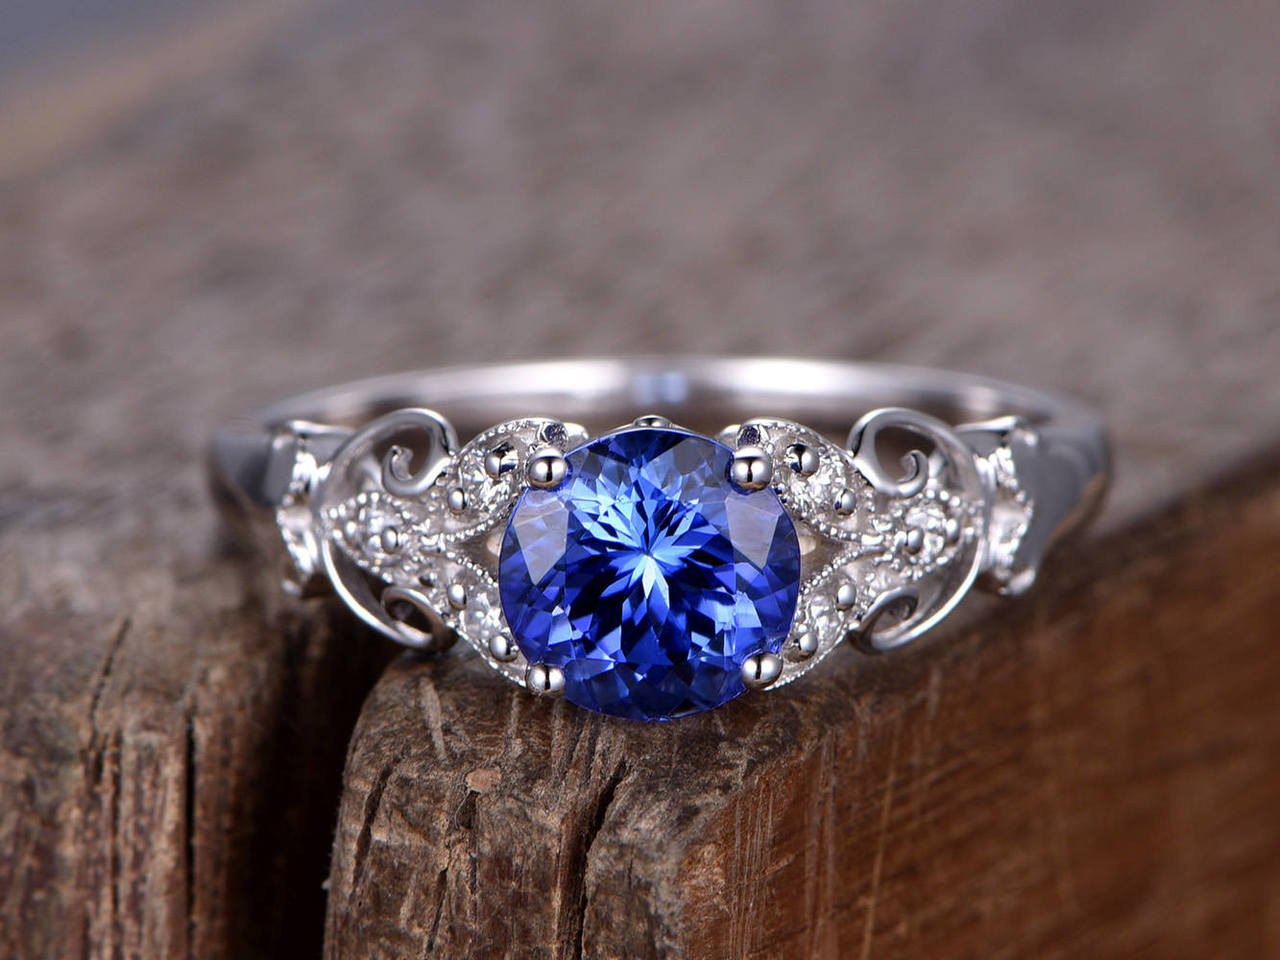 Sapphire Ring,art Deco Engagement Ring,7mm Round Created. 30 Point Engagement Rings. Round Cluster Diamond Wedding Rings. Alexis Bittar Rings. Genuine Moonstone Wedding Rings. Fitness Rings. Link Rings. Silver Band Engagement Rings. Emerald Cut Engagement Rings